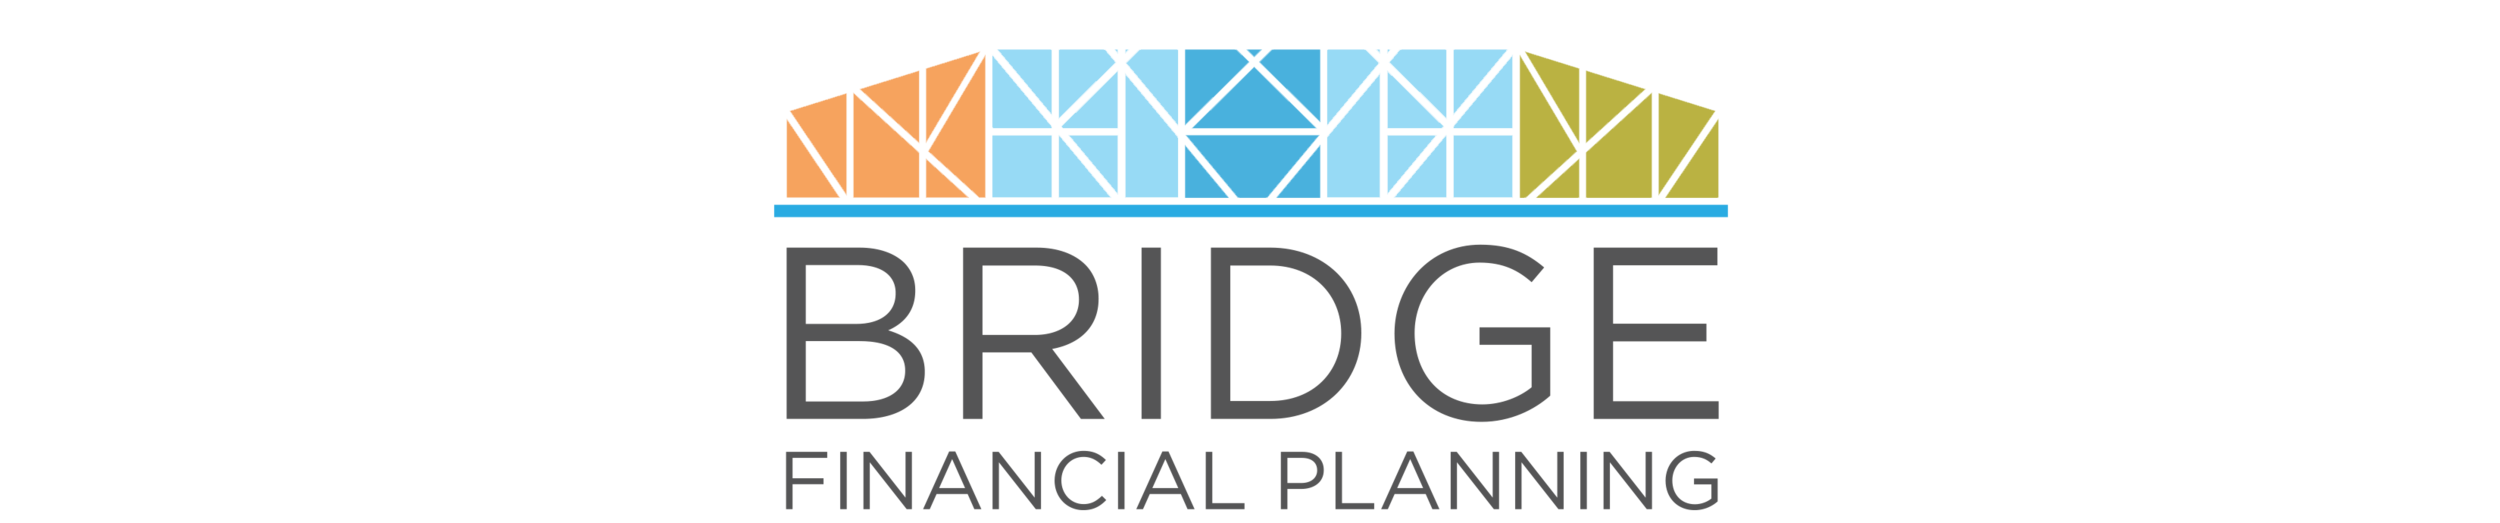 BRIDGE_FINANCIAL_PLANNING_CHATTANOOGA_logo.png